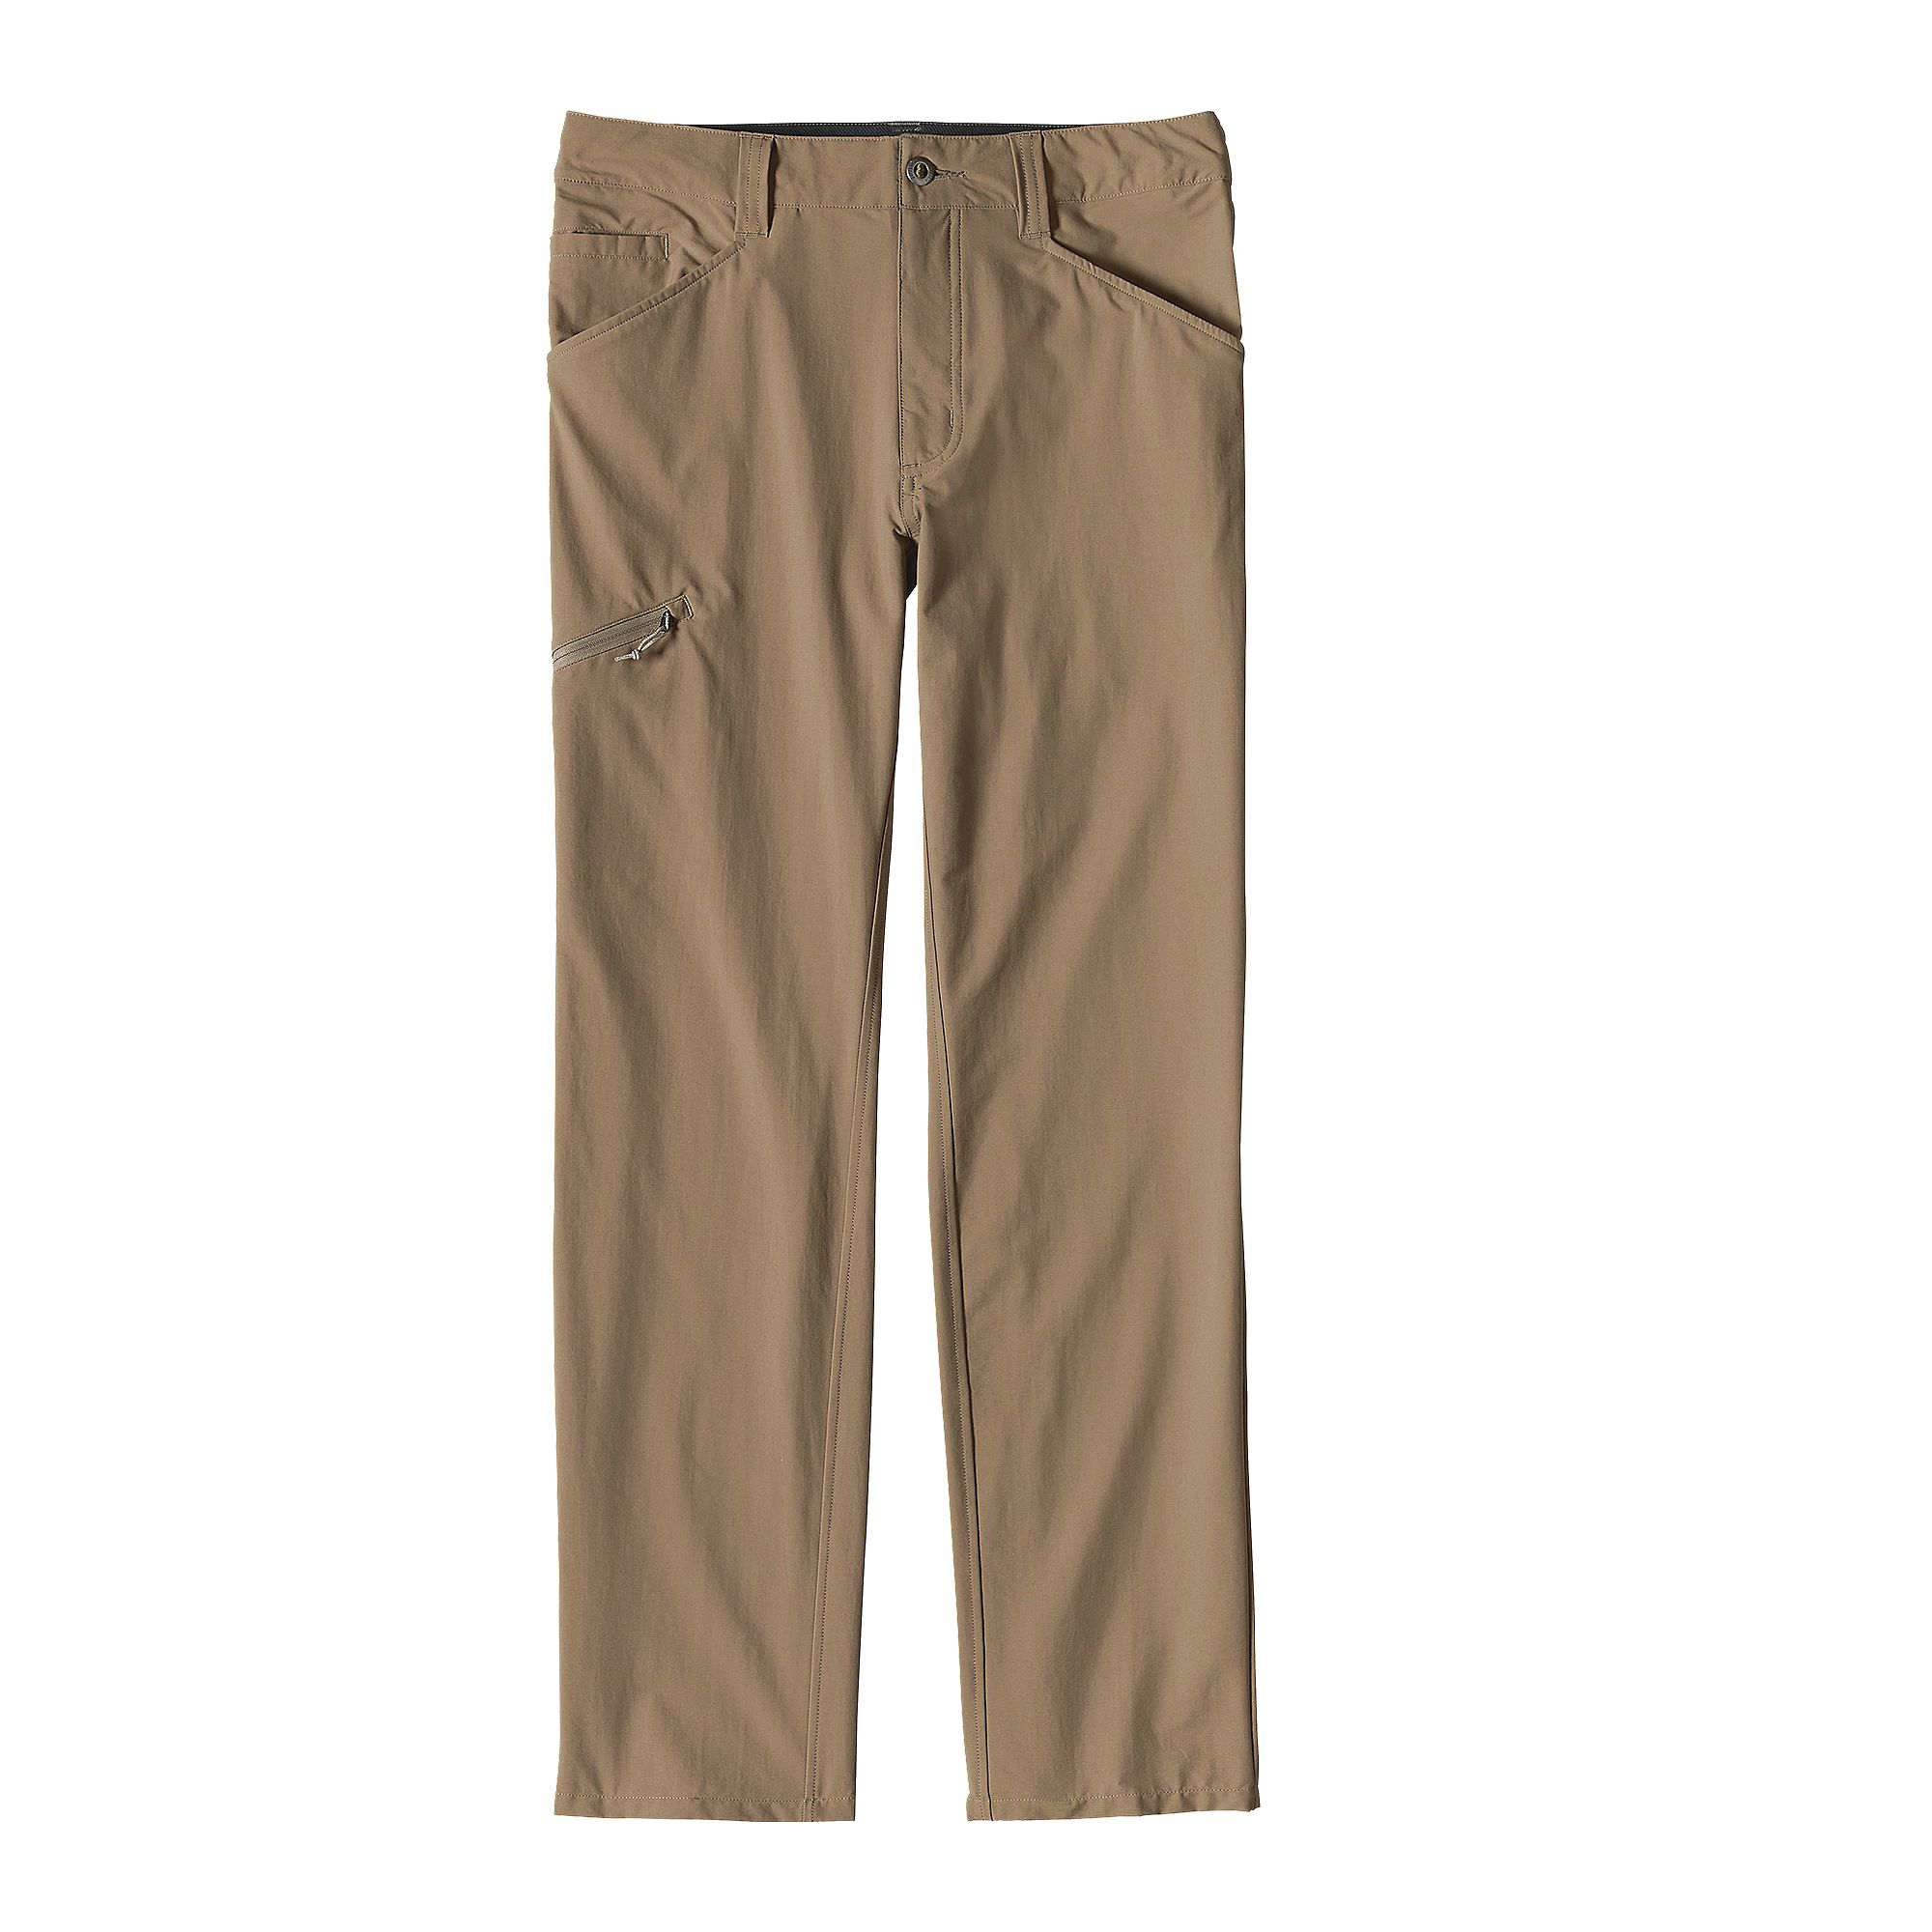 4c181e7b463 The 9 Best Hiking Pants of 2019